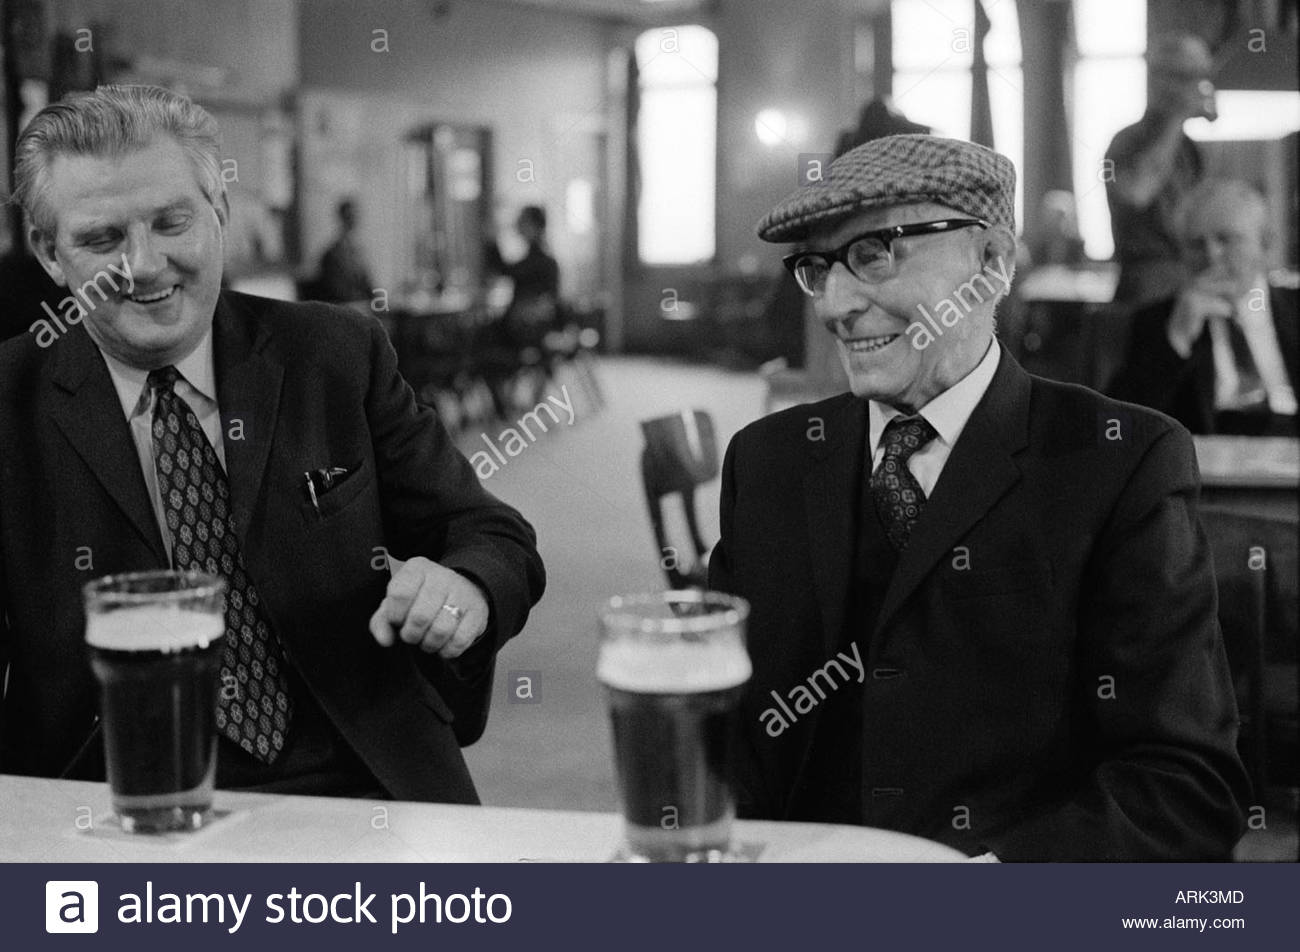 Byker St Peters Working Men's Social Club.  Newcastle upon Tyne, Tyne and Wear   1973. Sunday morning - Stock Image